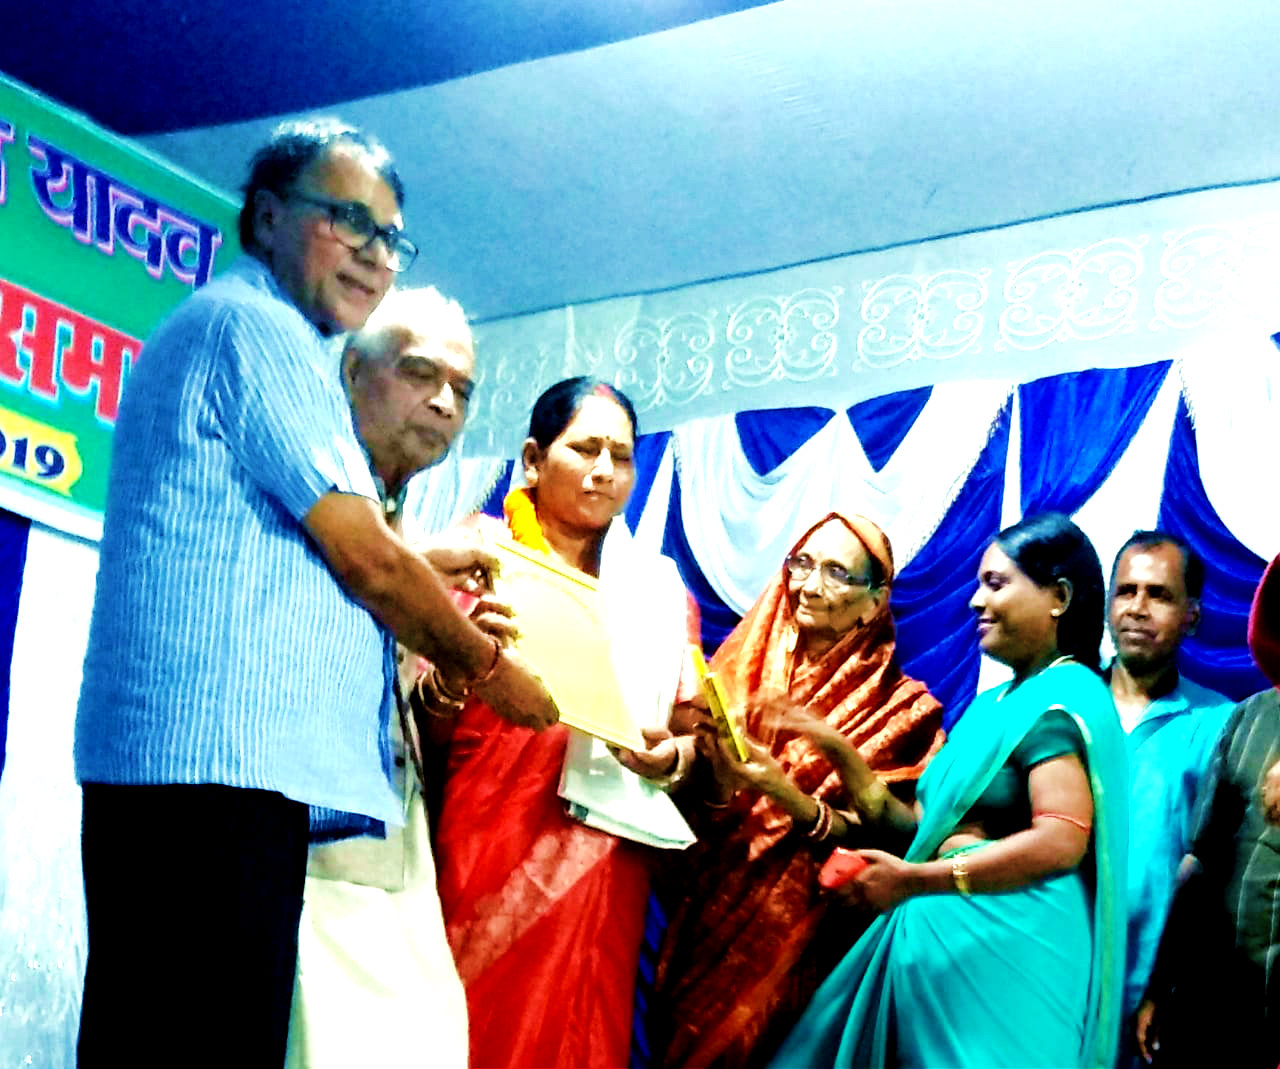 Samajsevi-Sahityakar Dr.Bhupendra Madhepuri along with Ex-ProVC Dr.K.K.Mandal giving Certificate & Angavastram to Science Teacher Smt.Sita Devi from Keshav Kanya Girls High School in an event organised by S.K.P.Y. Memorial Trust.